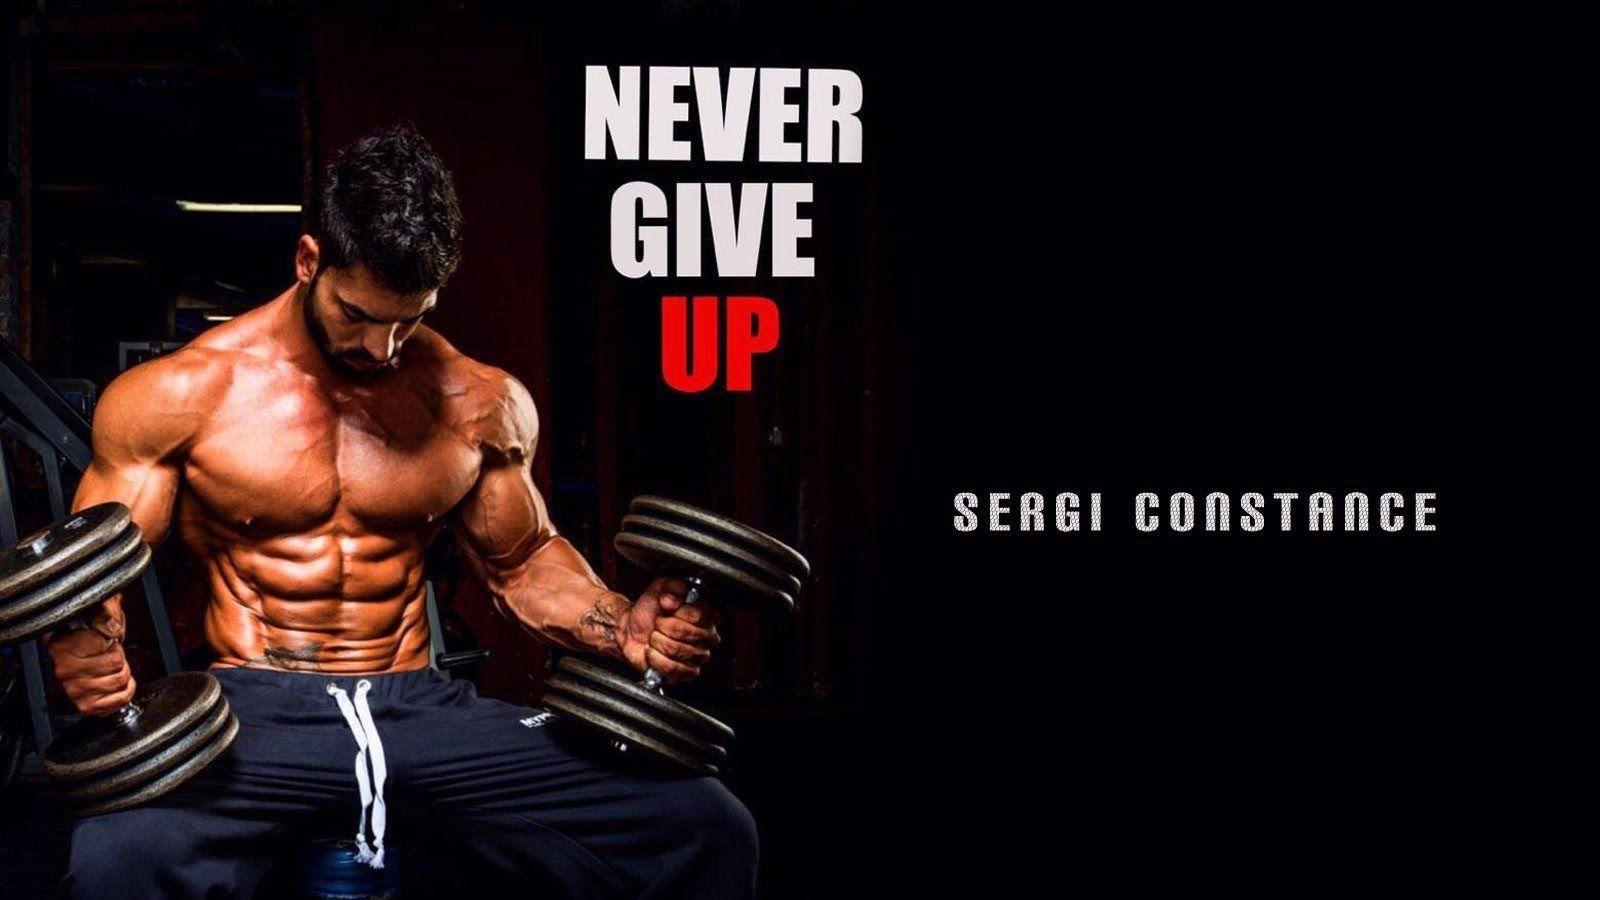 Bodybuilding 2015 Wallpapers Wallpaper Cave HD Wallpapers Download Free Images Wallpaper [1000image.com]